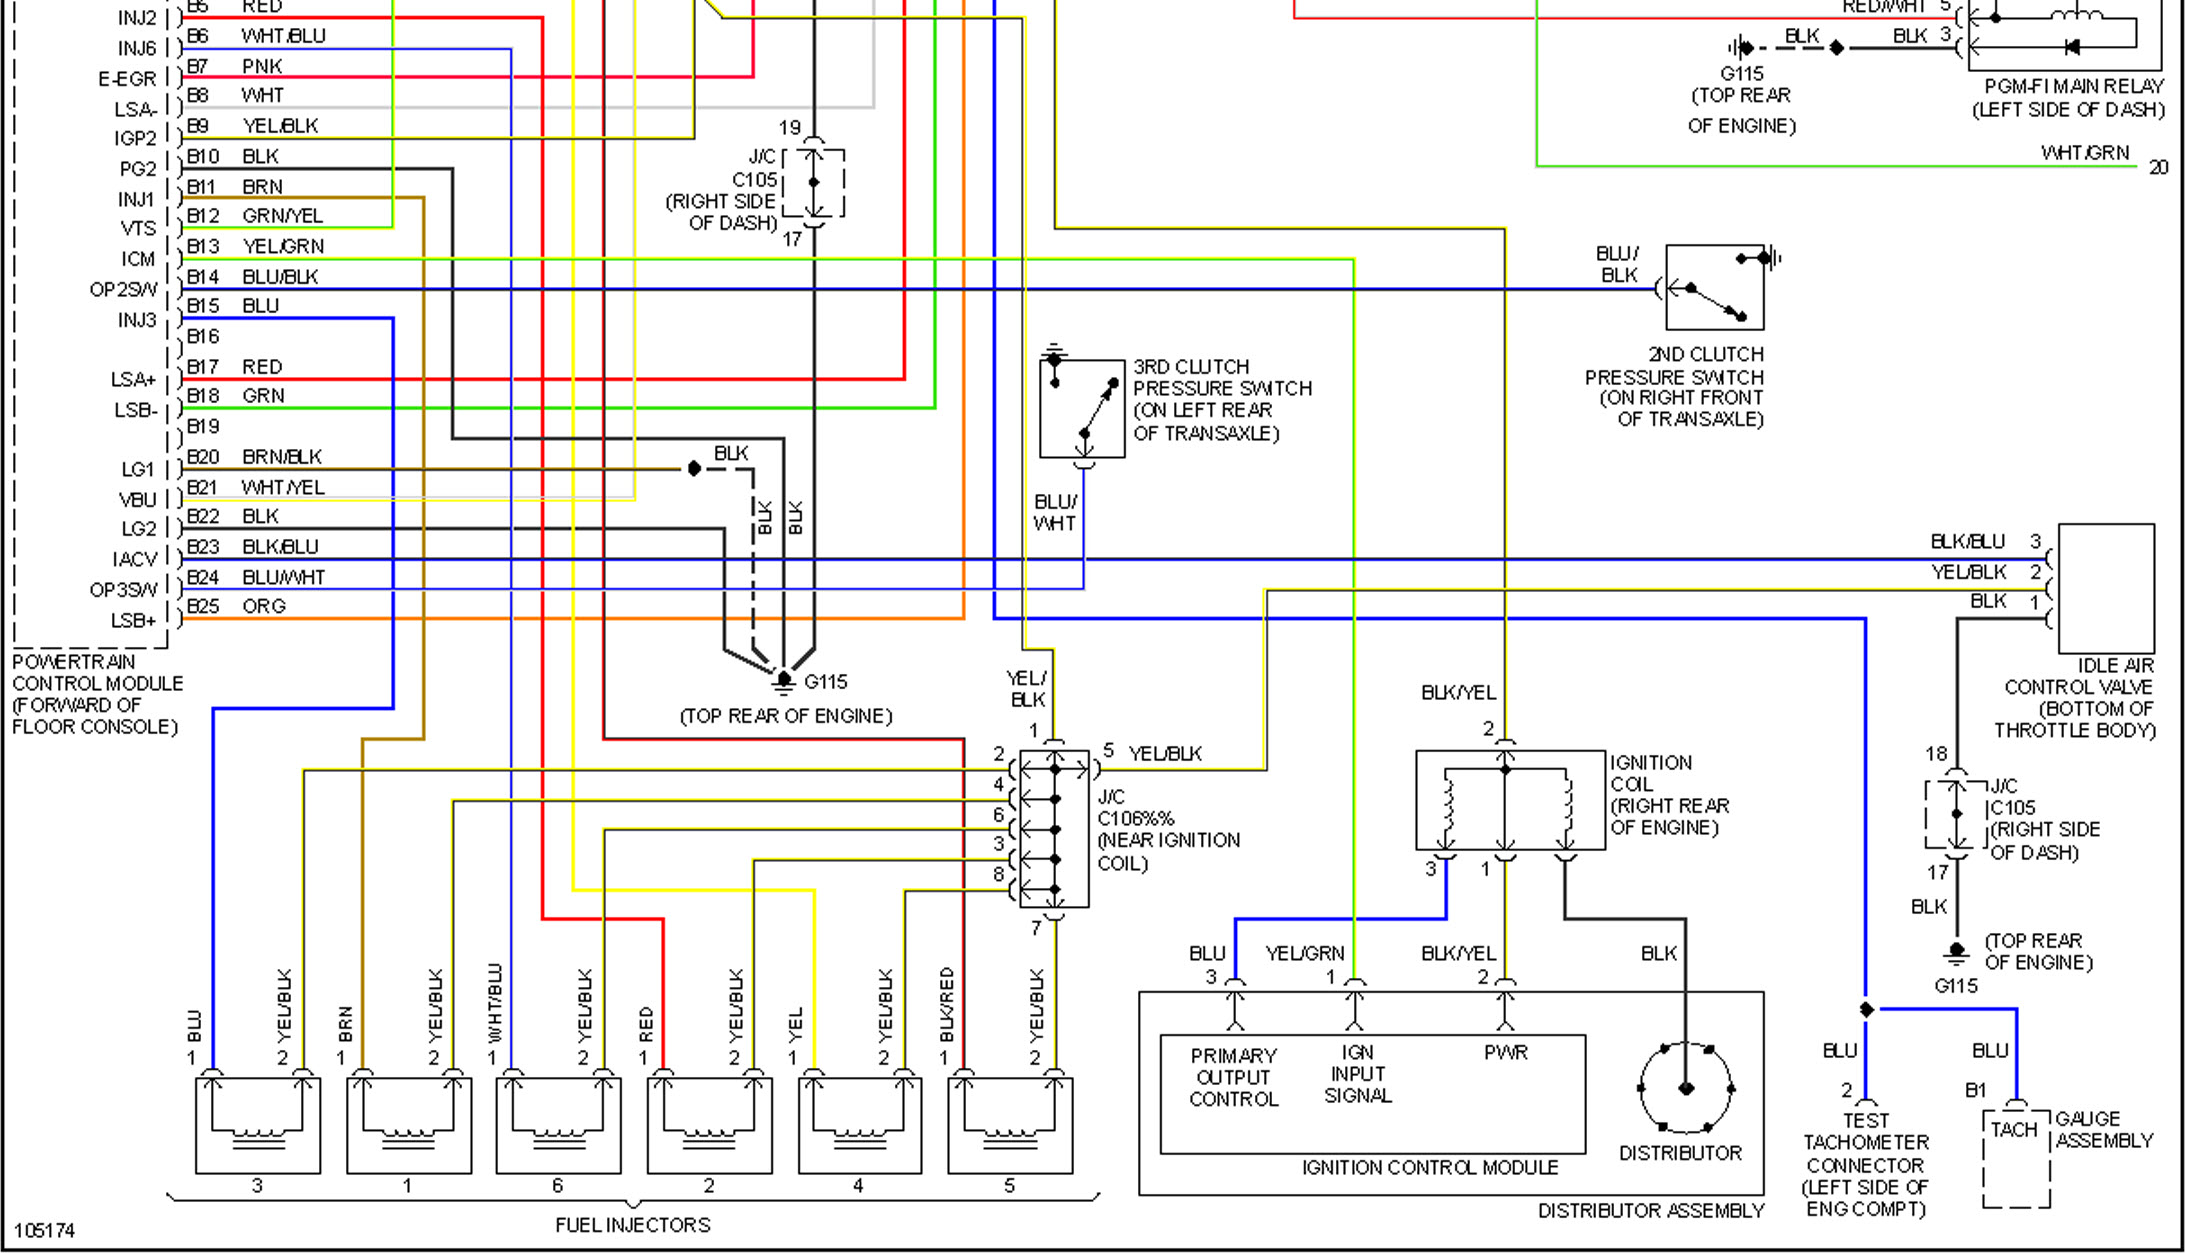 honda accord ignition wiring diagram honda image 1998 honda accord ignition wiring diagram wiring diagram and hernes on honda accord ignition wiring diagram